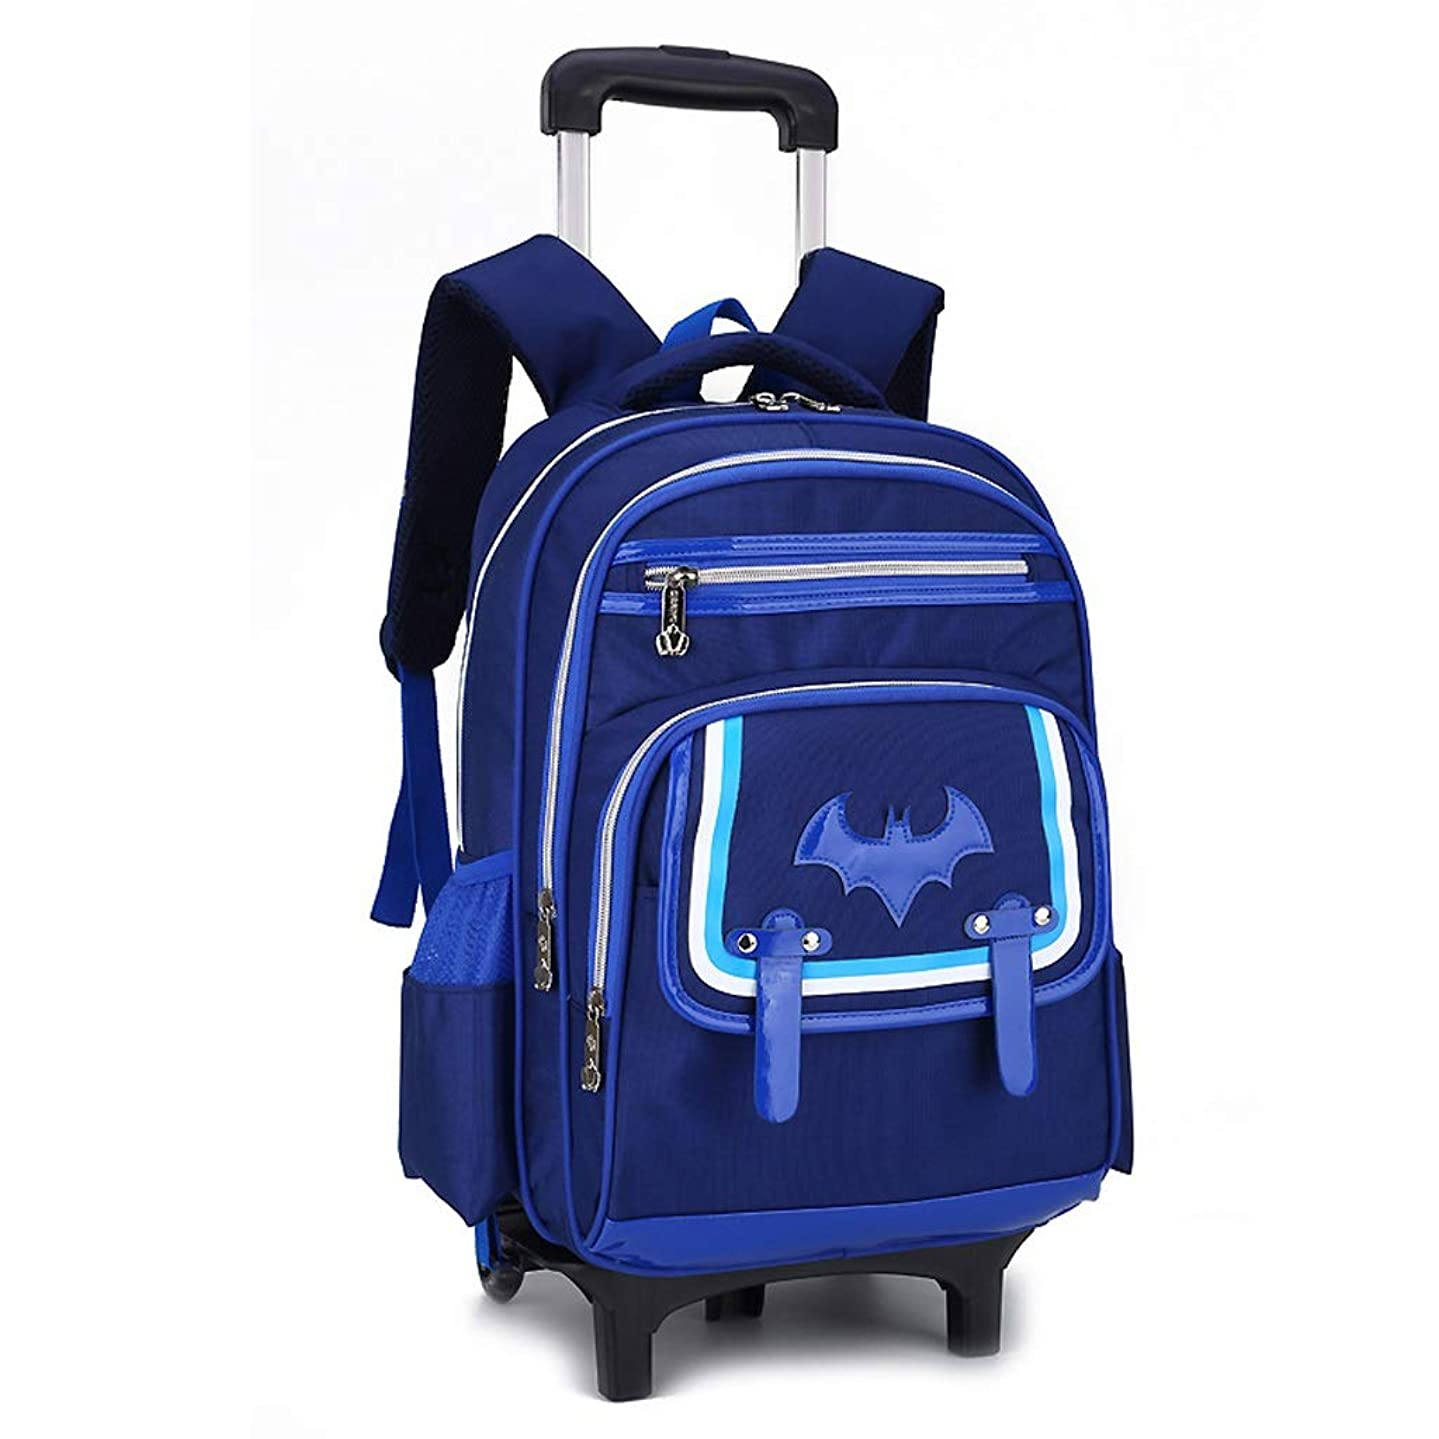 C-Xka Waterproof Wheeled Backpack Cute Cartoon Rolling Backpack Elementary Students Wheeled Book Bag Primary School Bag Carry-on Luggage Bag Girls Boys (Color : Blue, Size : Six Rounds)